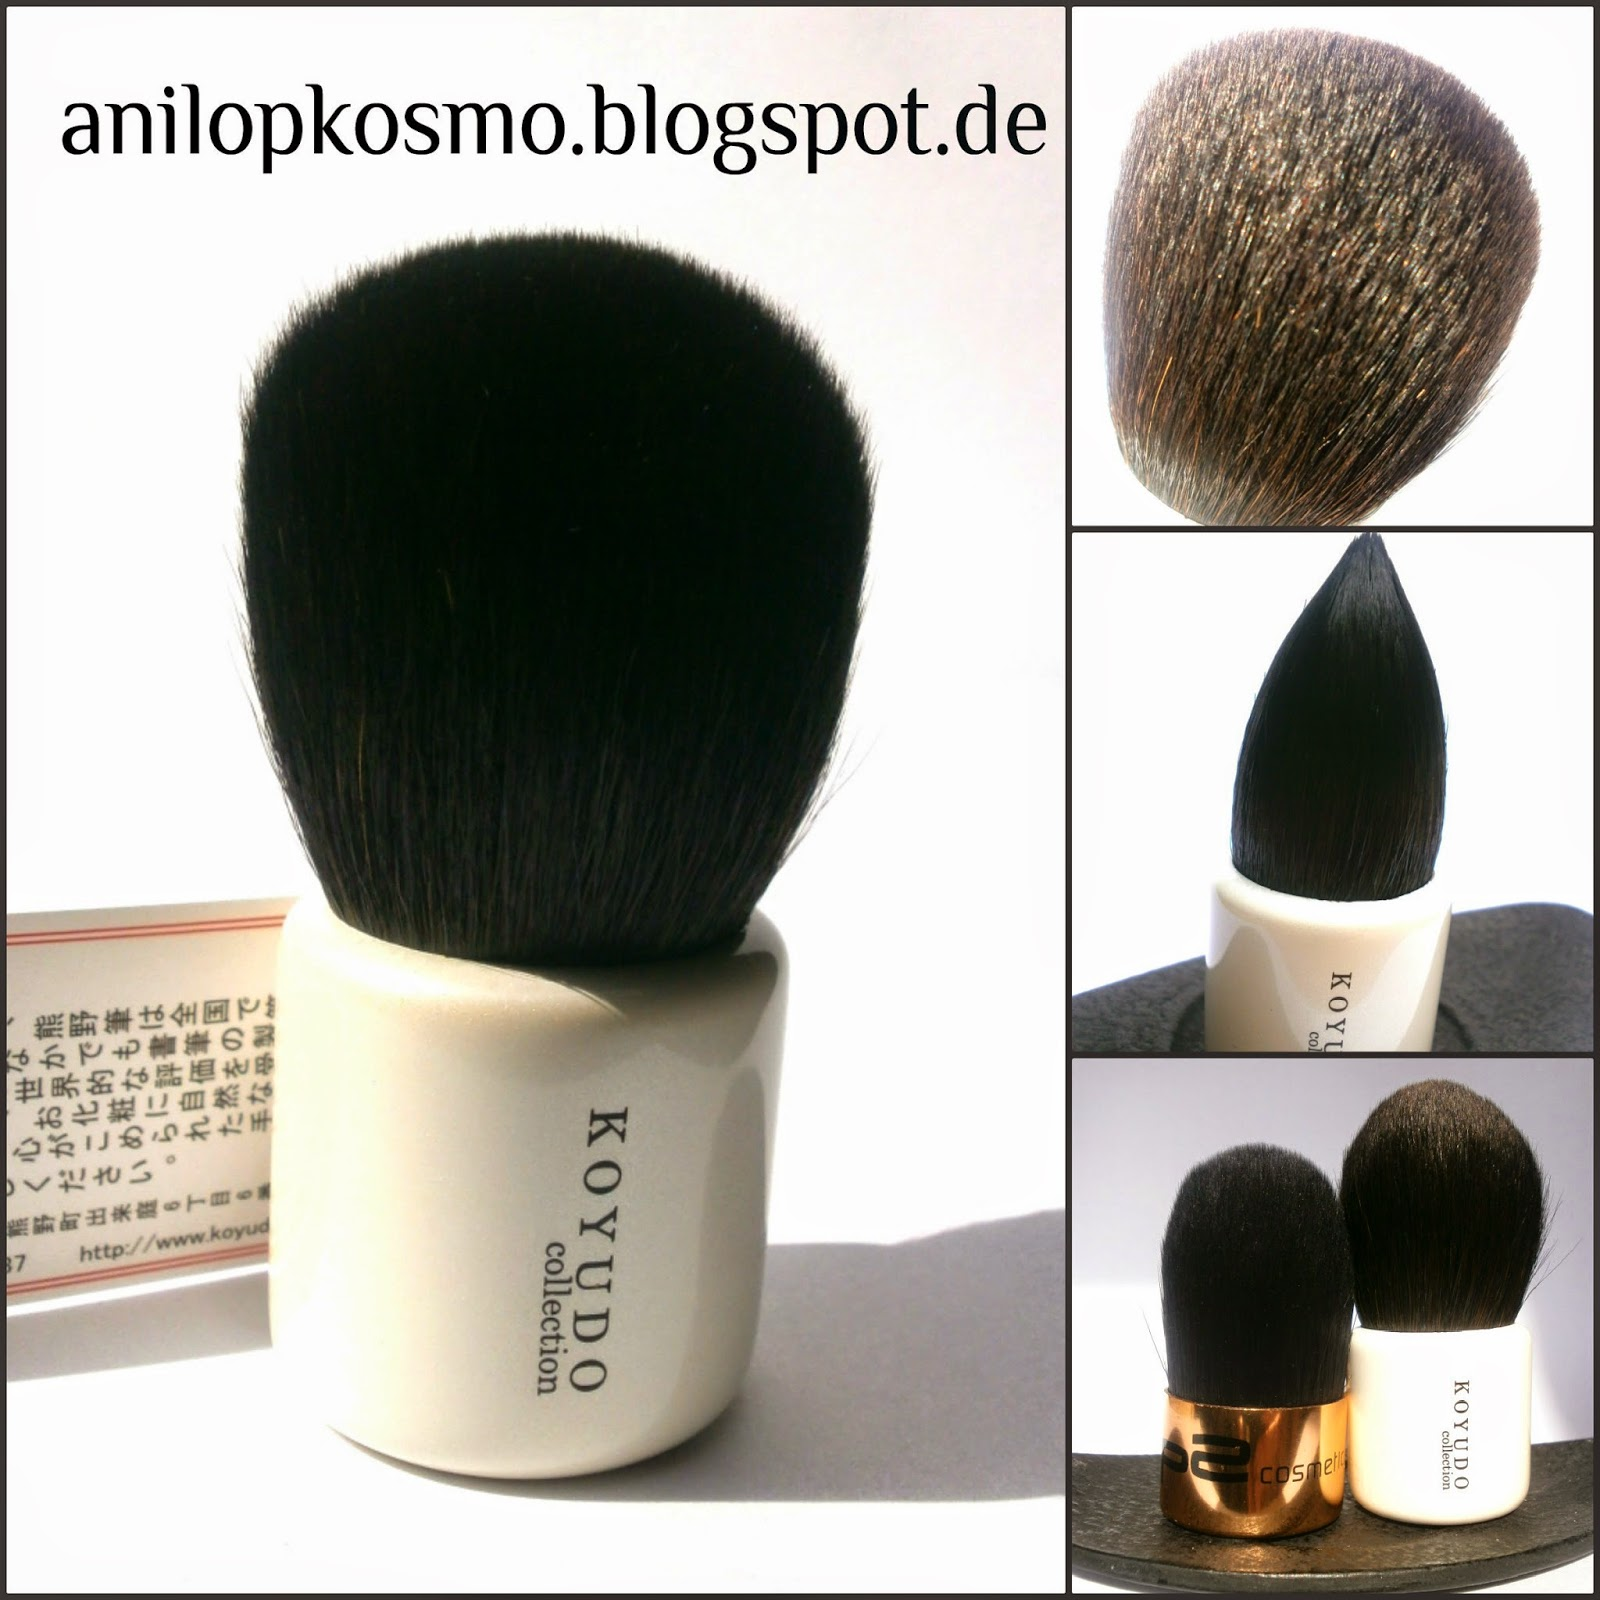 Koyudo H Brush Series Mushroom Brush Grey Sguirrel & Baby Goat  отзыв